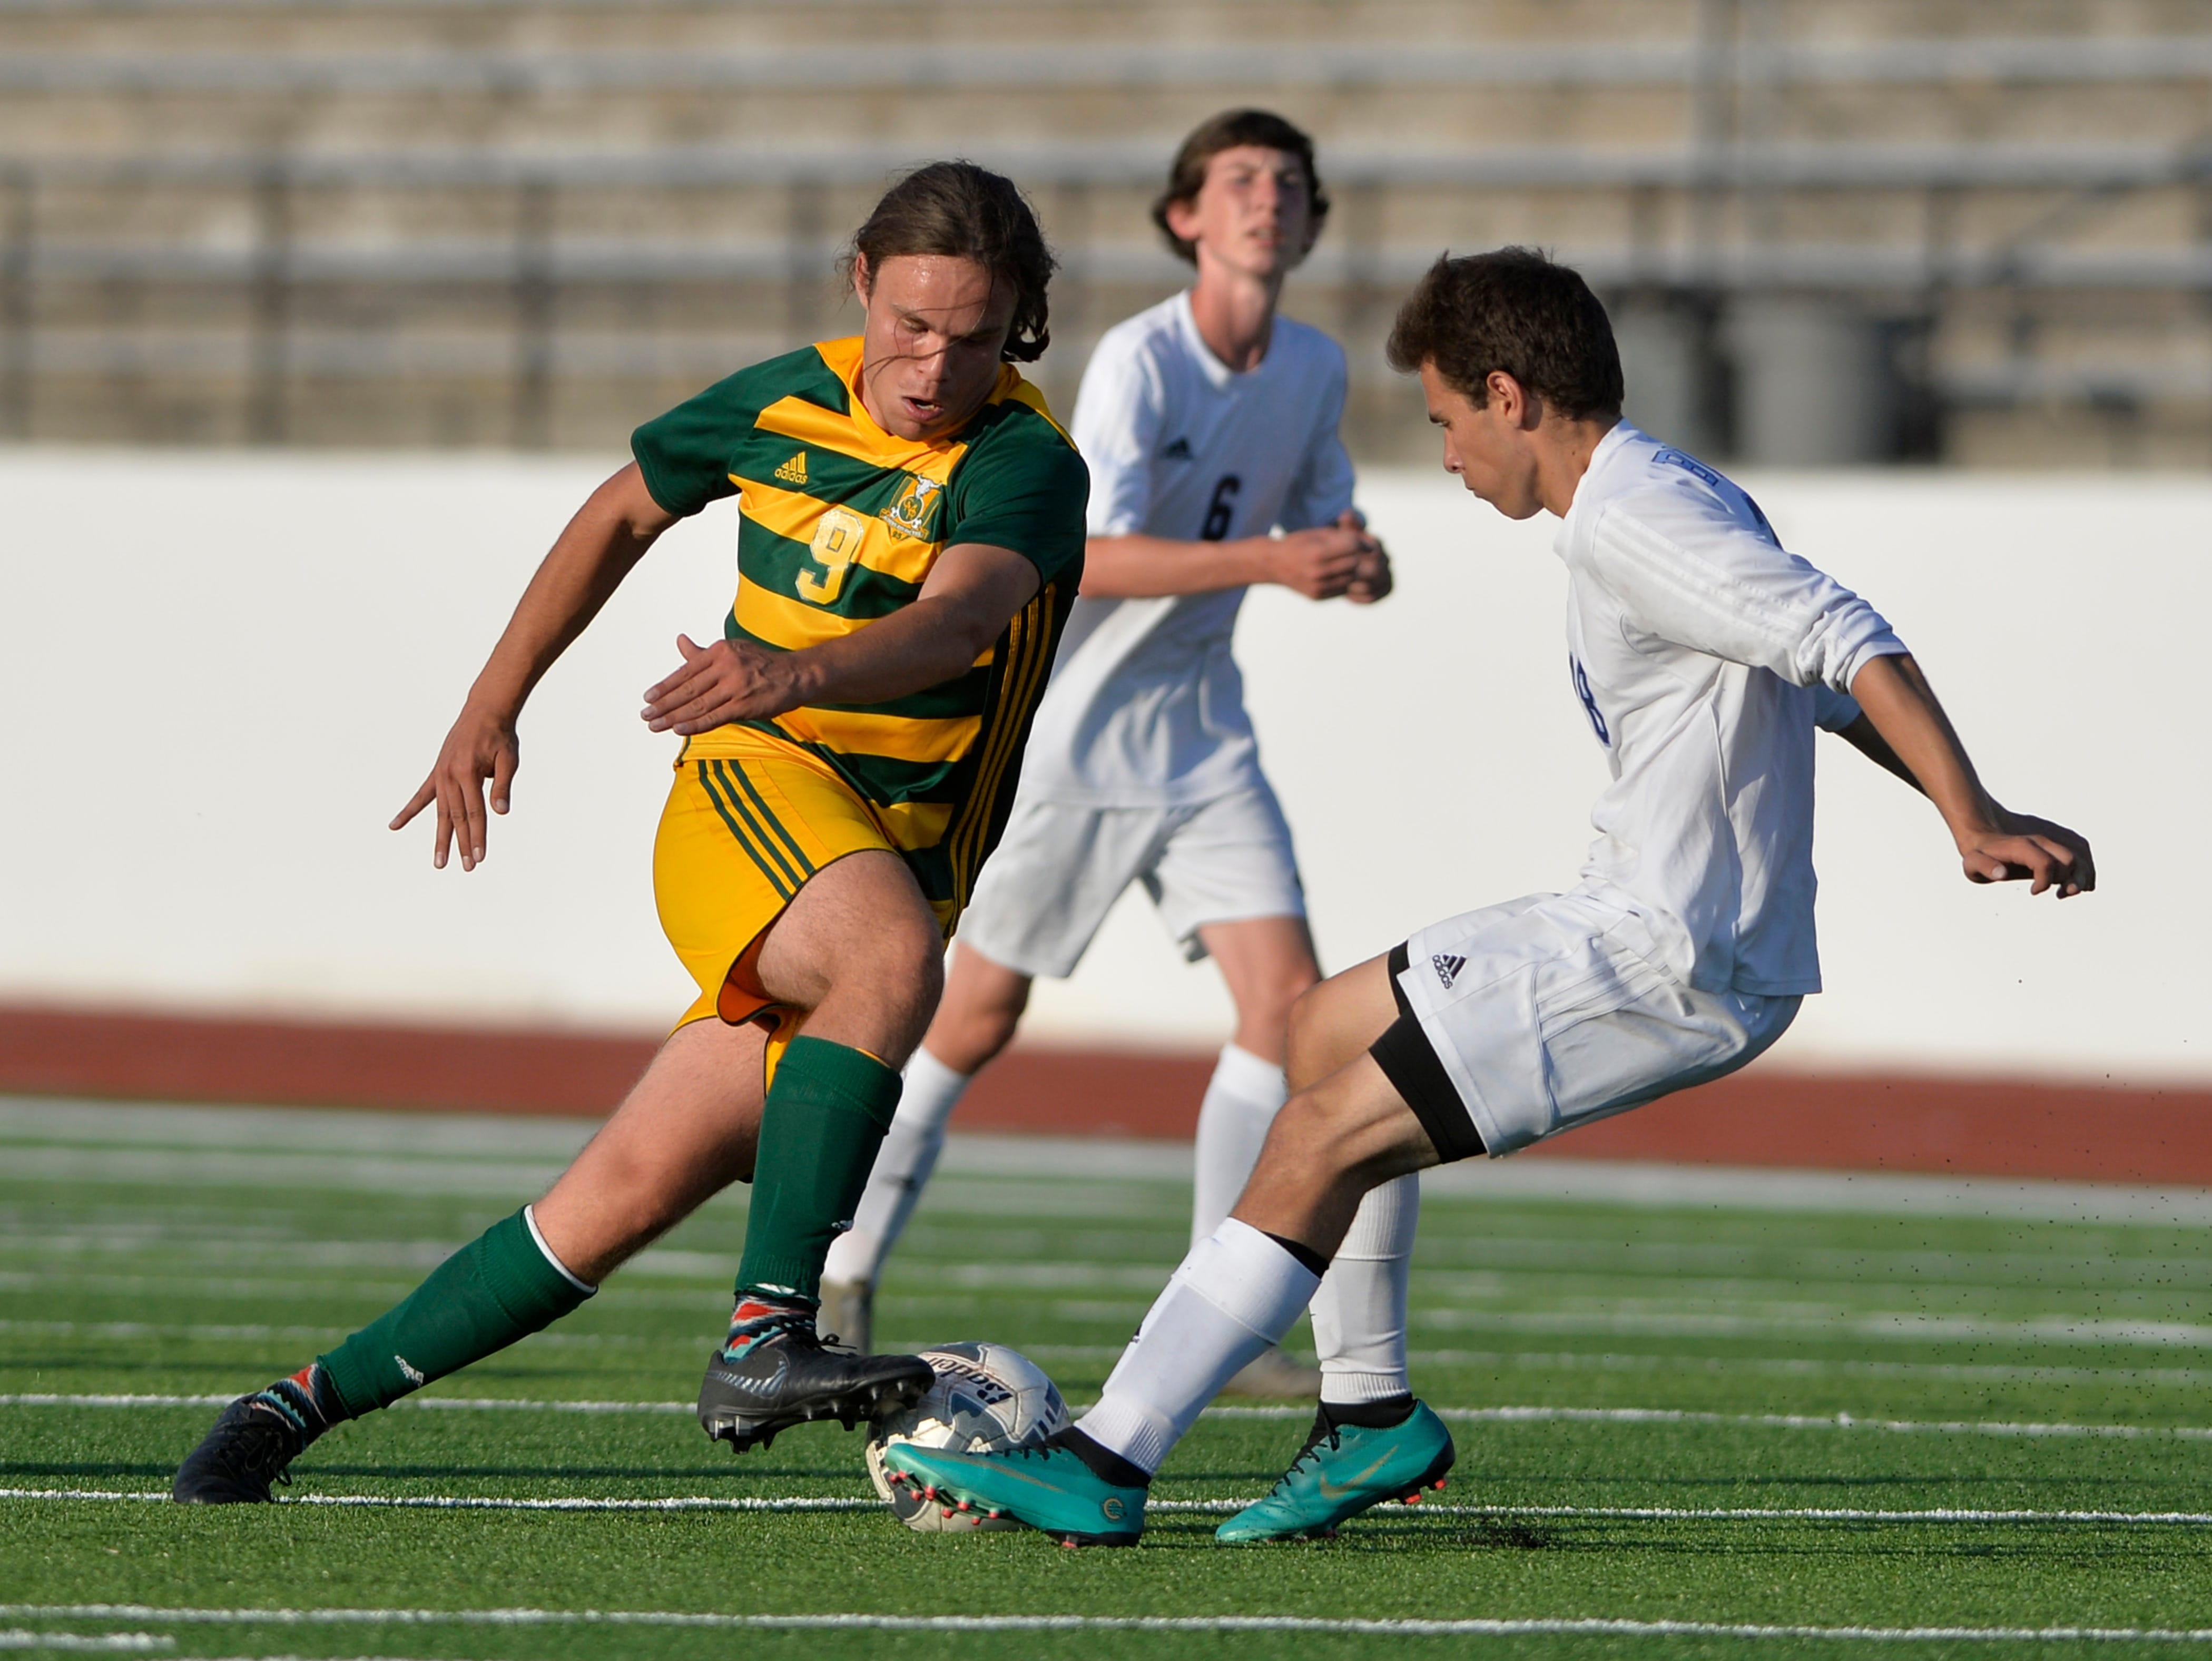 CMR's Seamus Jennings attempts to get passed Great Falls High's Brian Gemberling during the crosstown soccer match at Memorial Stadium, Thursday, Sept. 6, 2018.